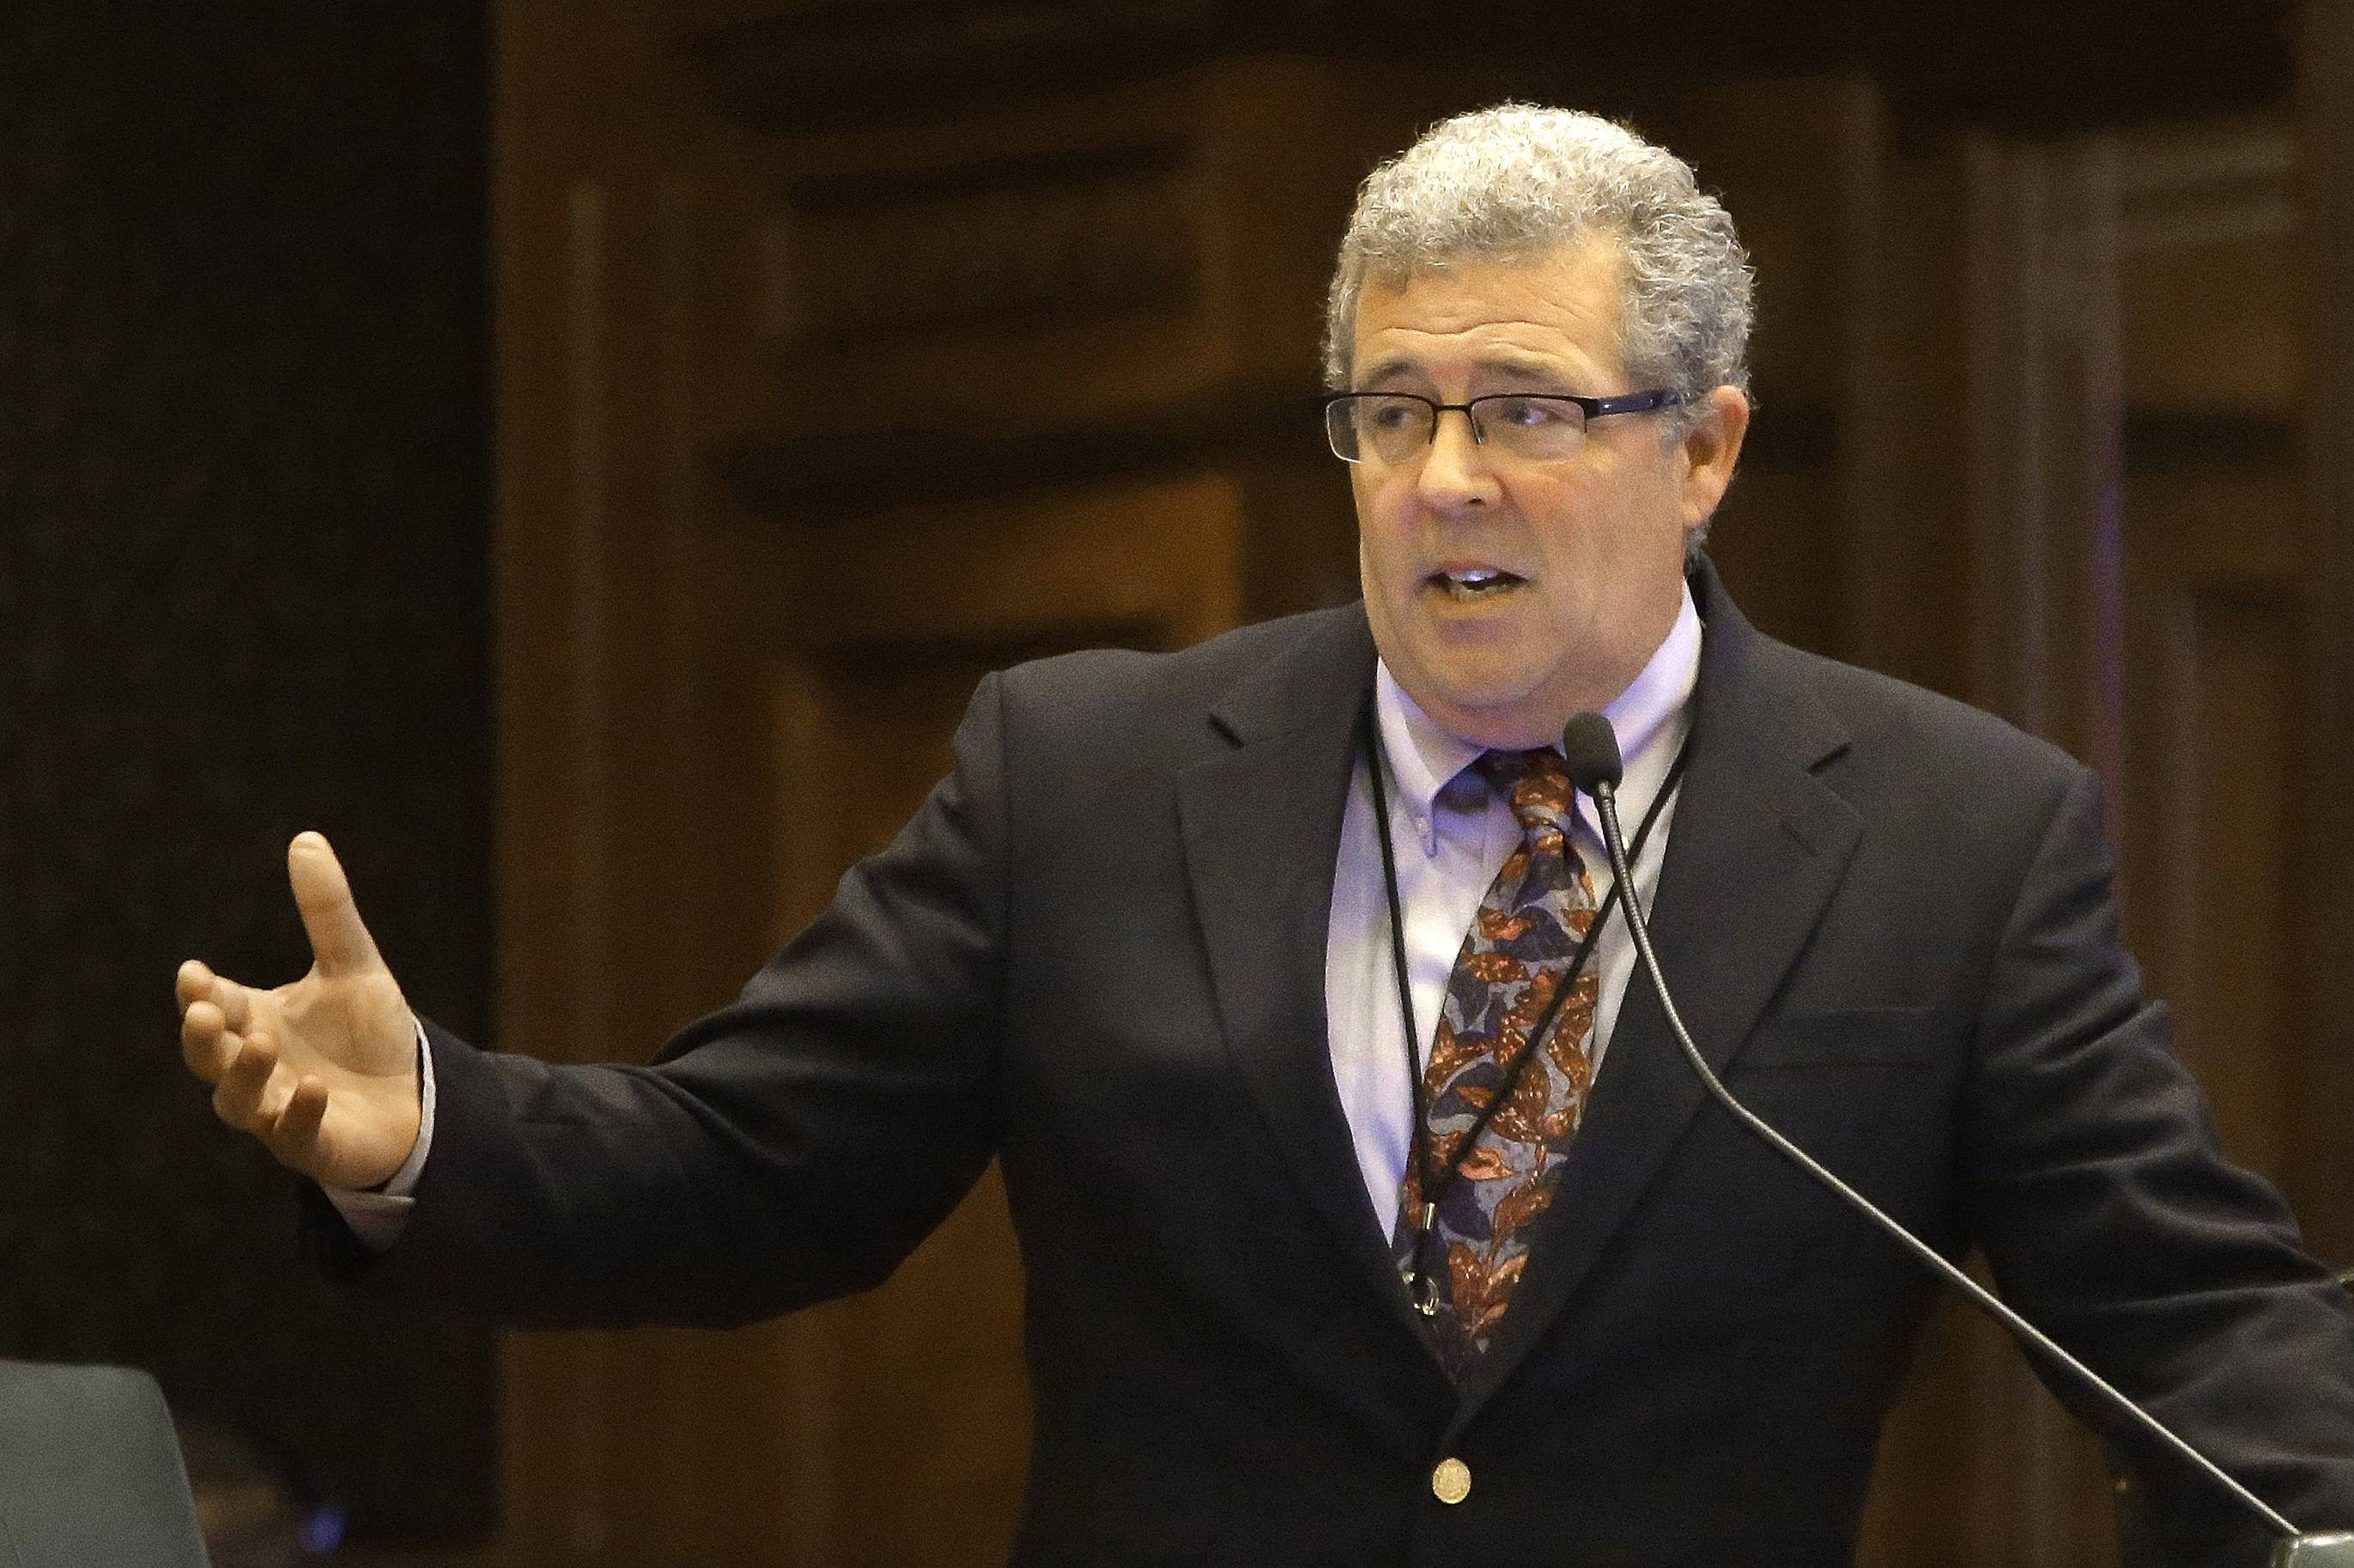 Illinois Auditor General Frank Mautino, a Spring Valley Democrat, was appointed to the post last year after being a longtime lawmaker.